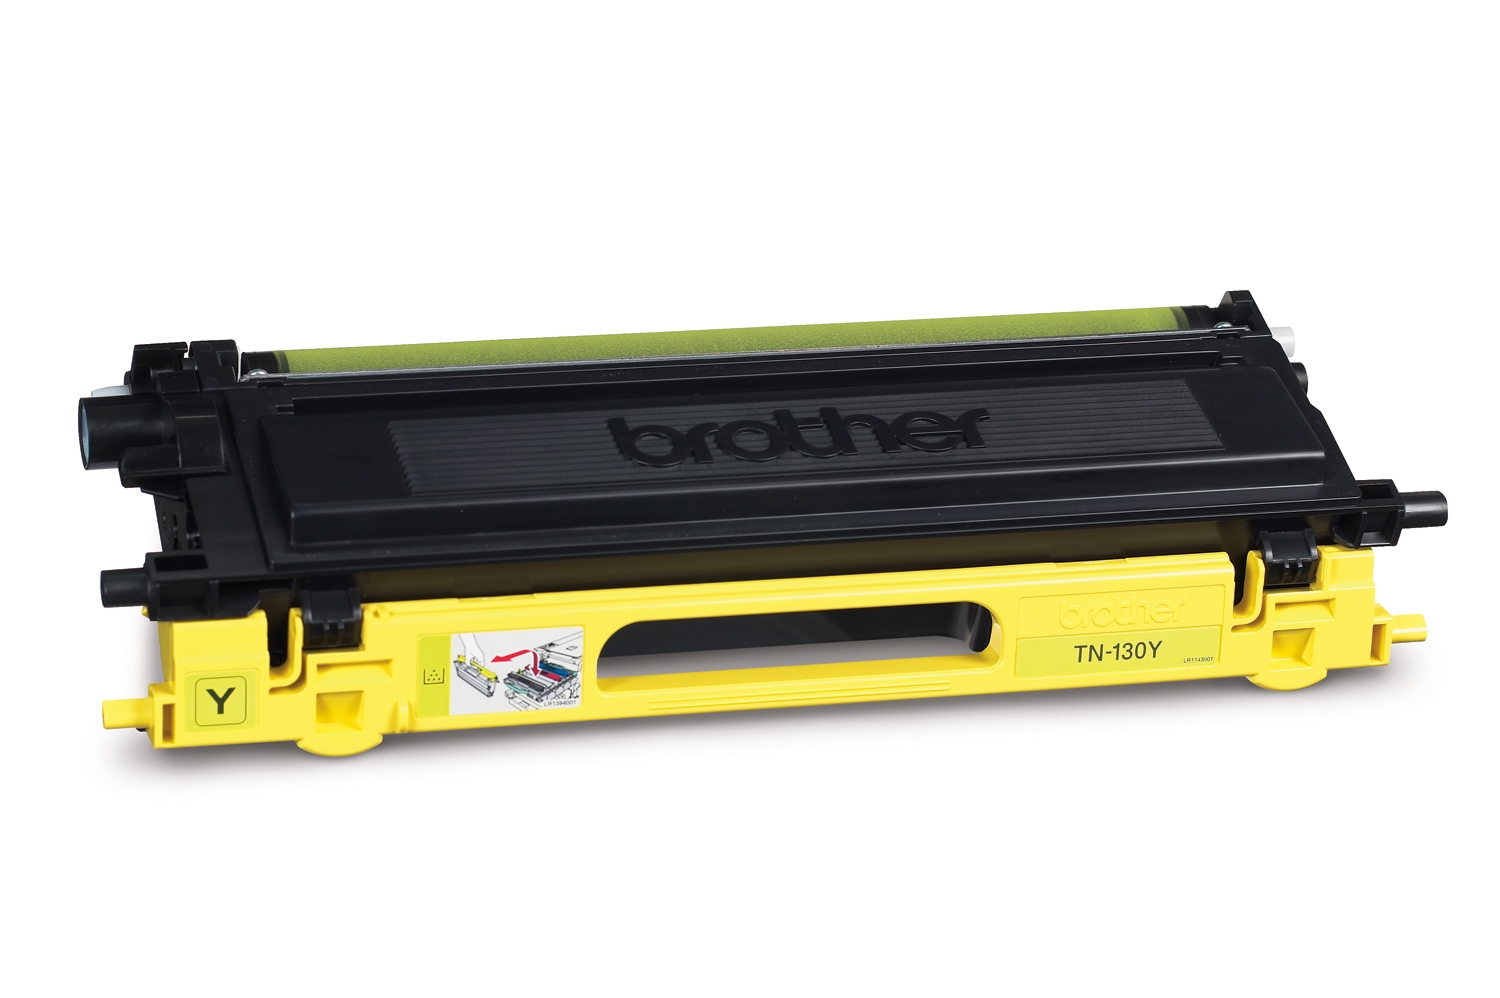 Remanufactured Brother TN130Y Toner Cartridge Yellow 4K TN130Y - rem01